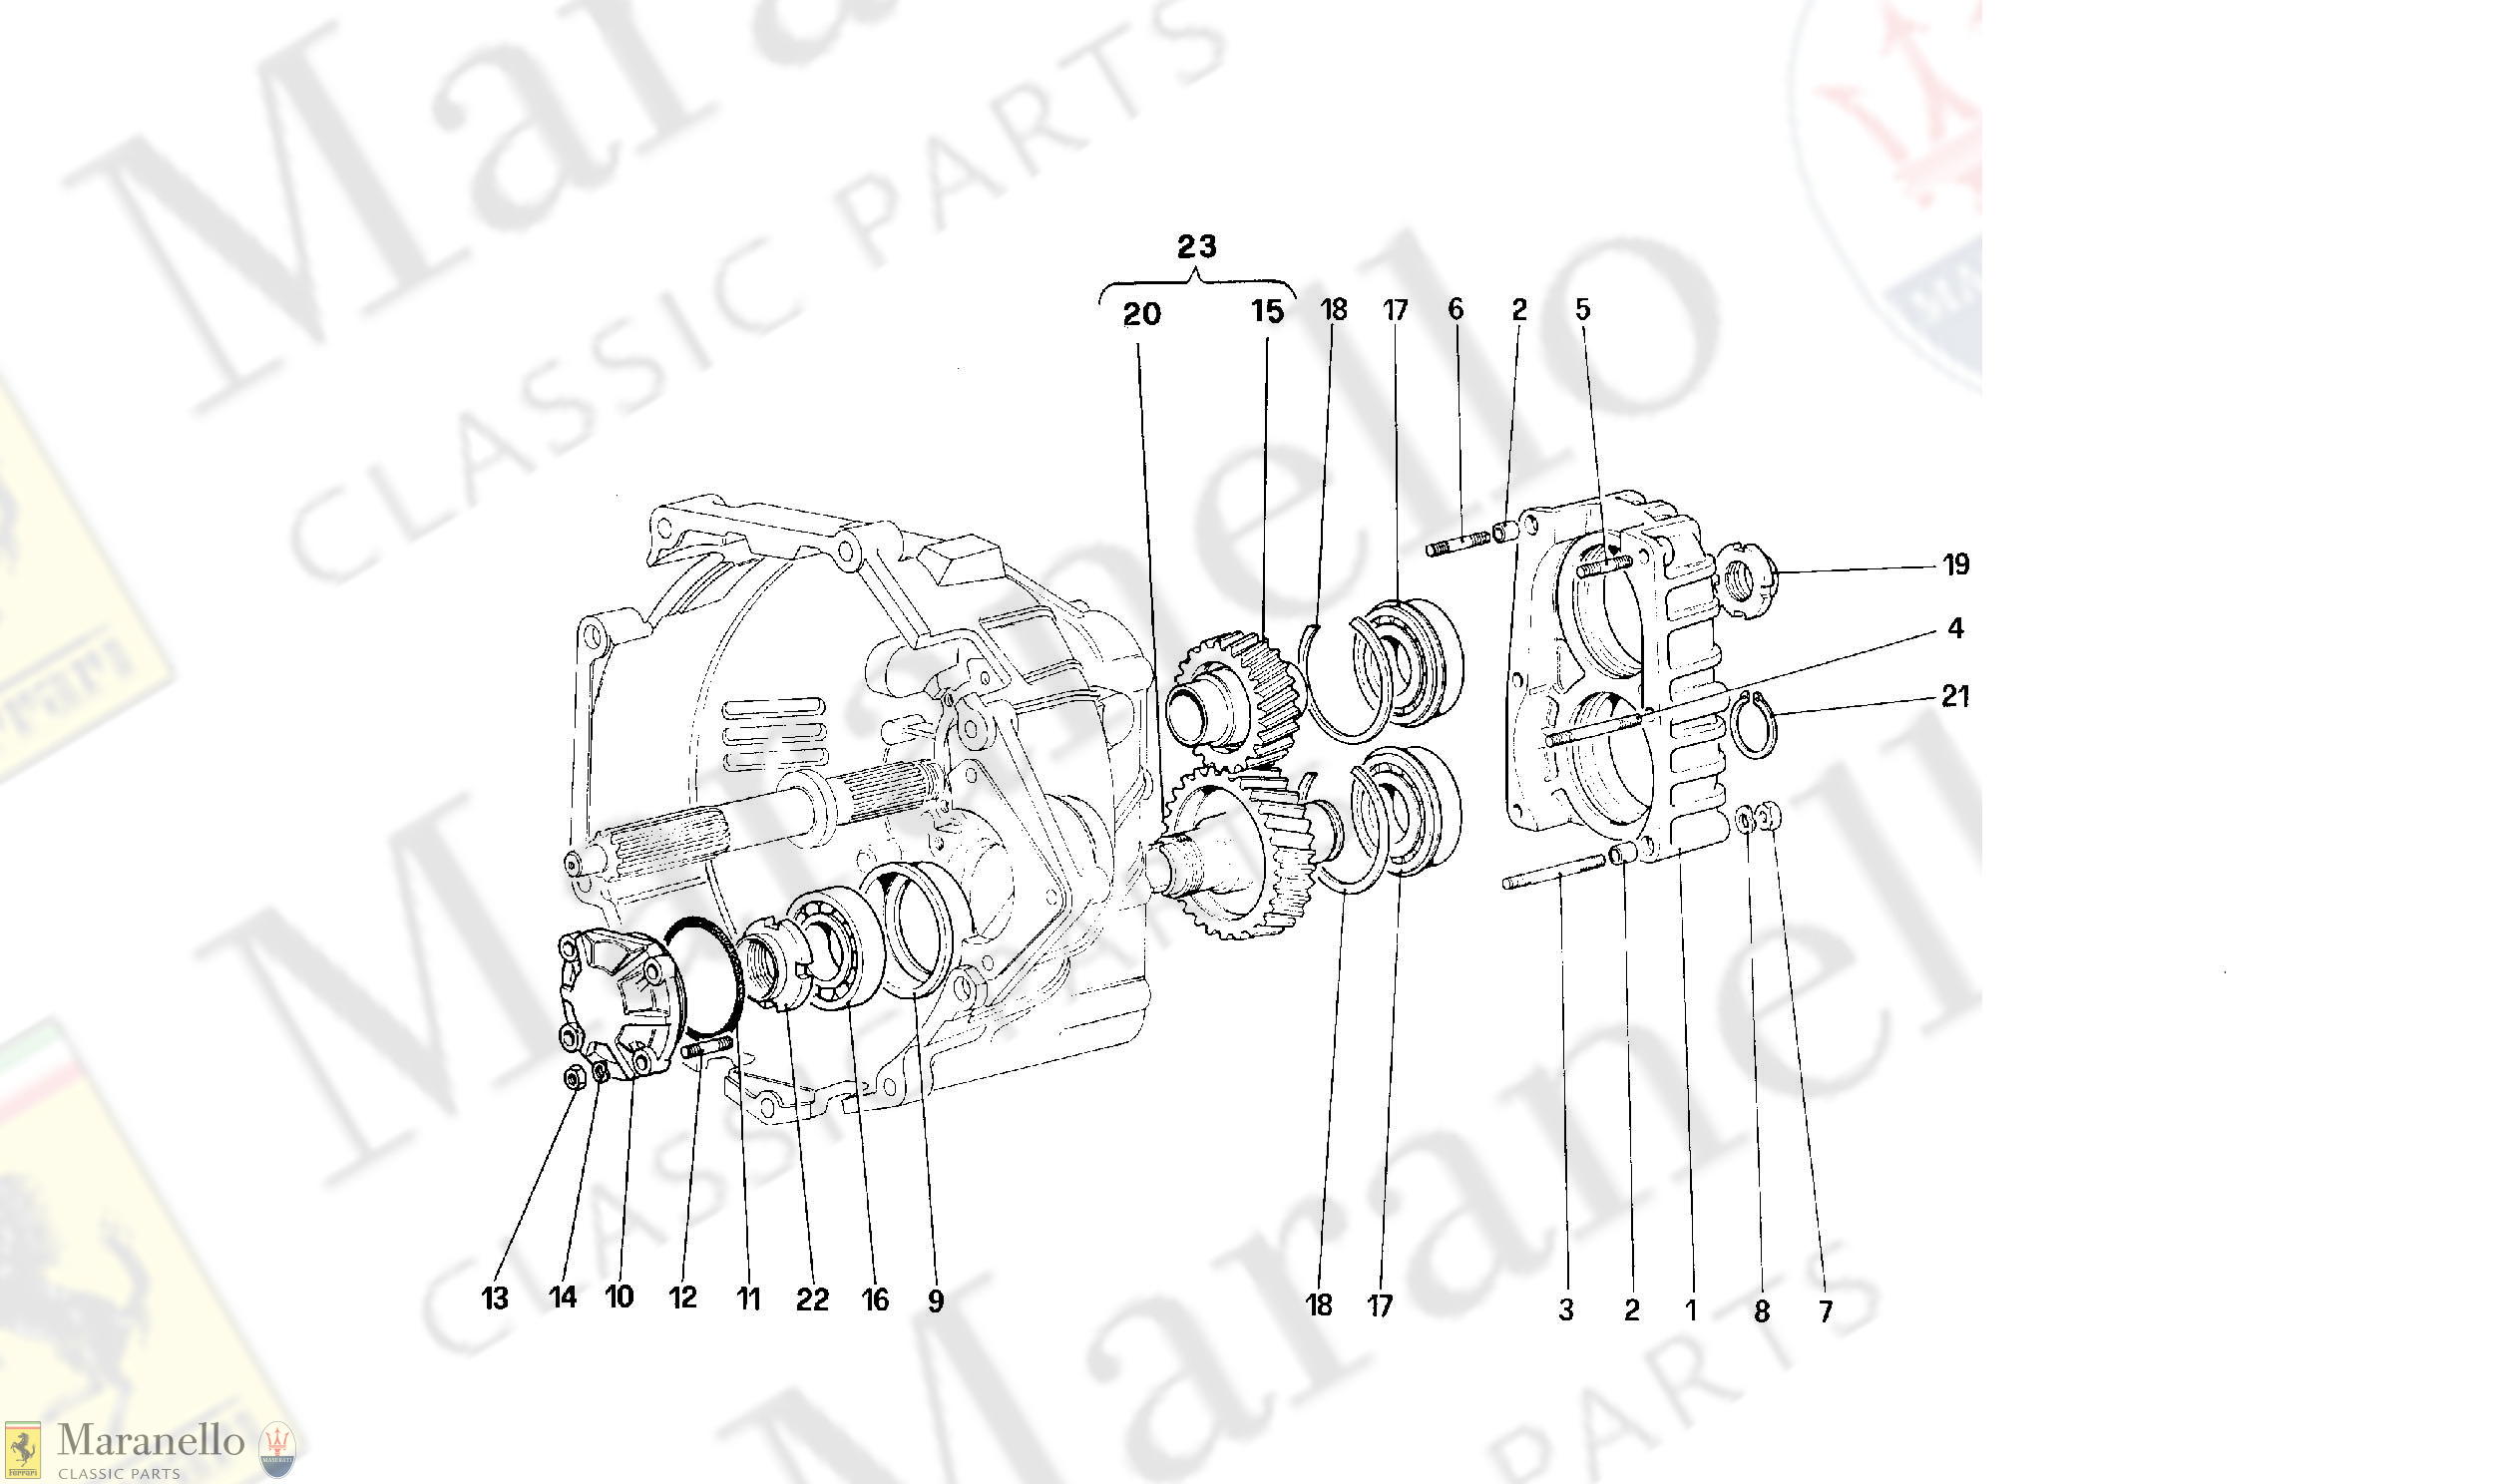 030 - Gearbox Transmission